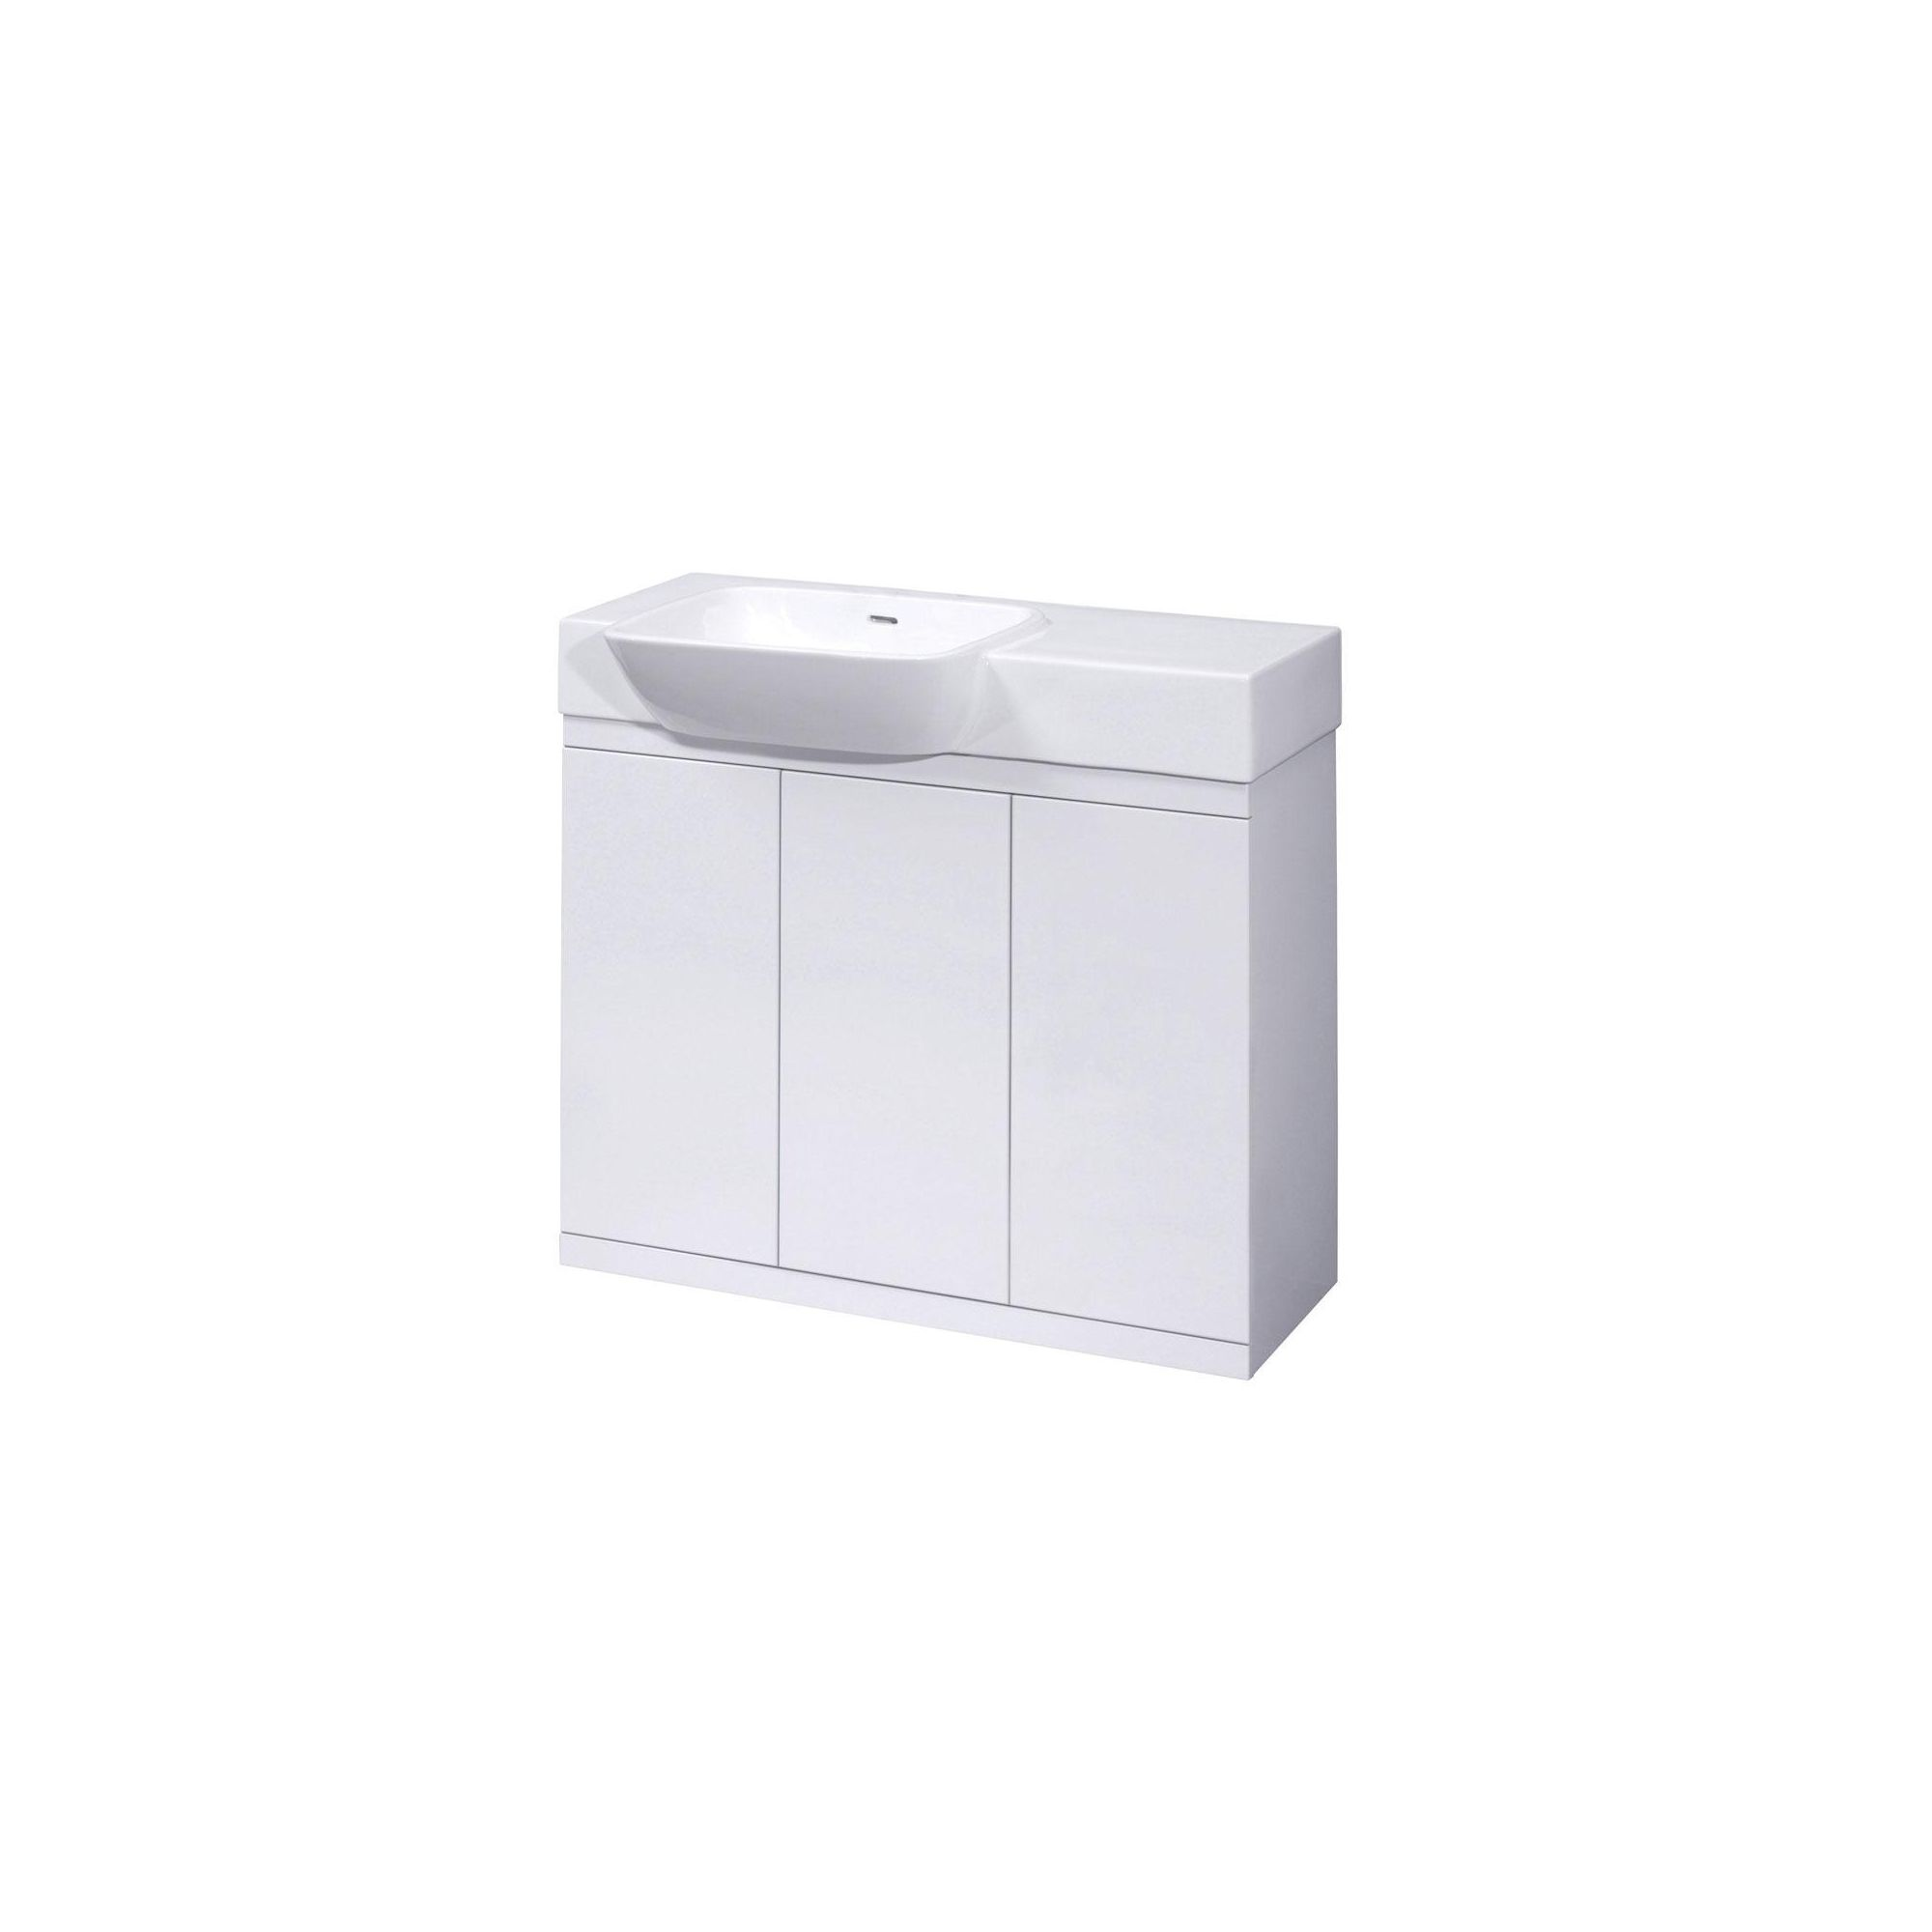 Ultra Lux White Floor Mounted Vanity Unit and Basin 695mm High x 900mm Wide